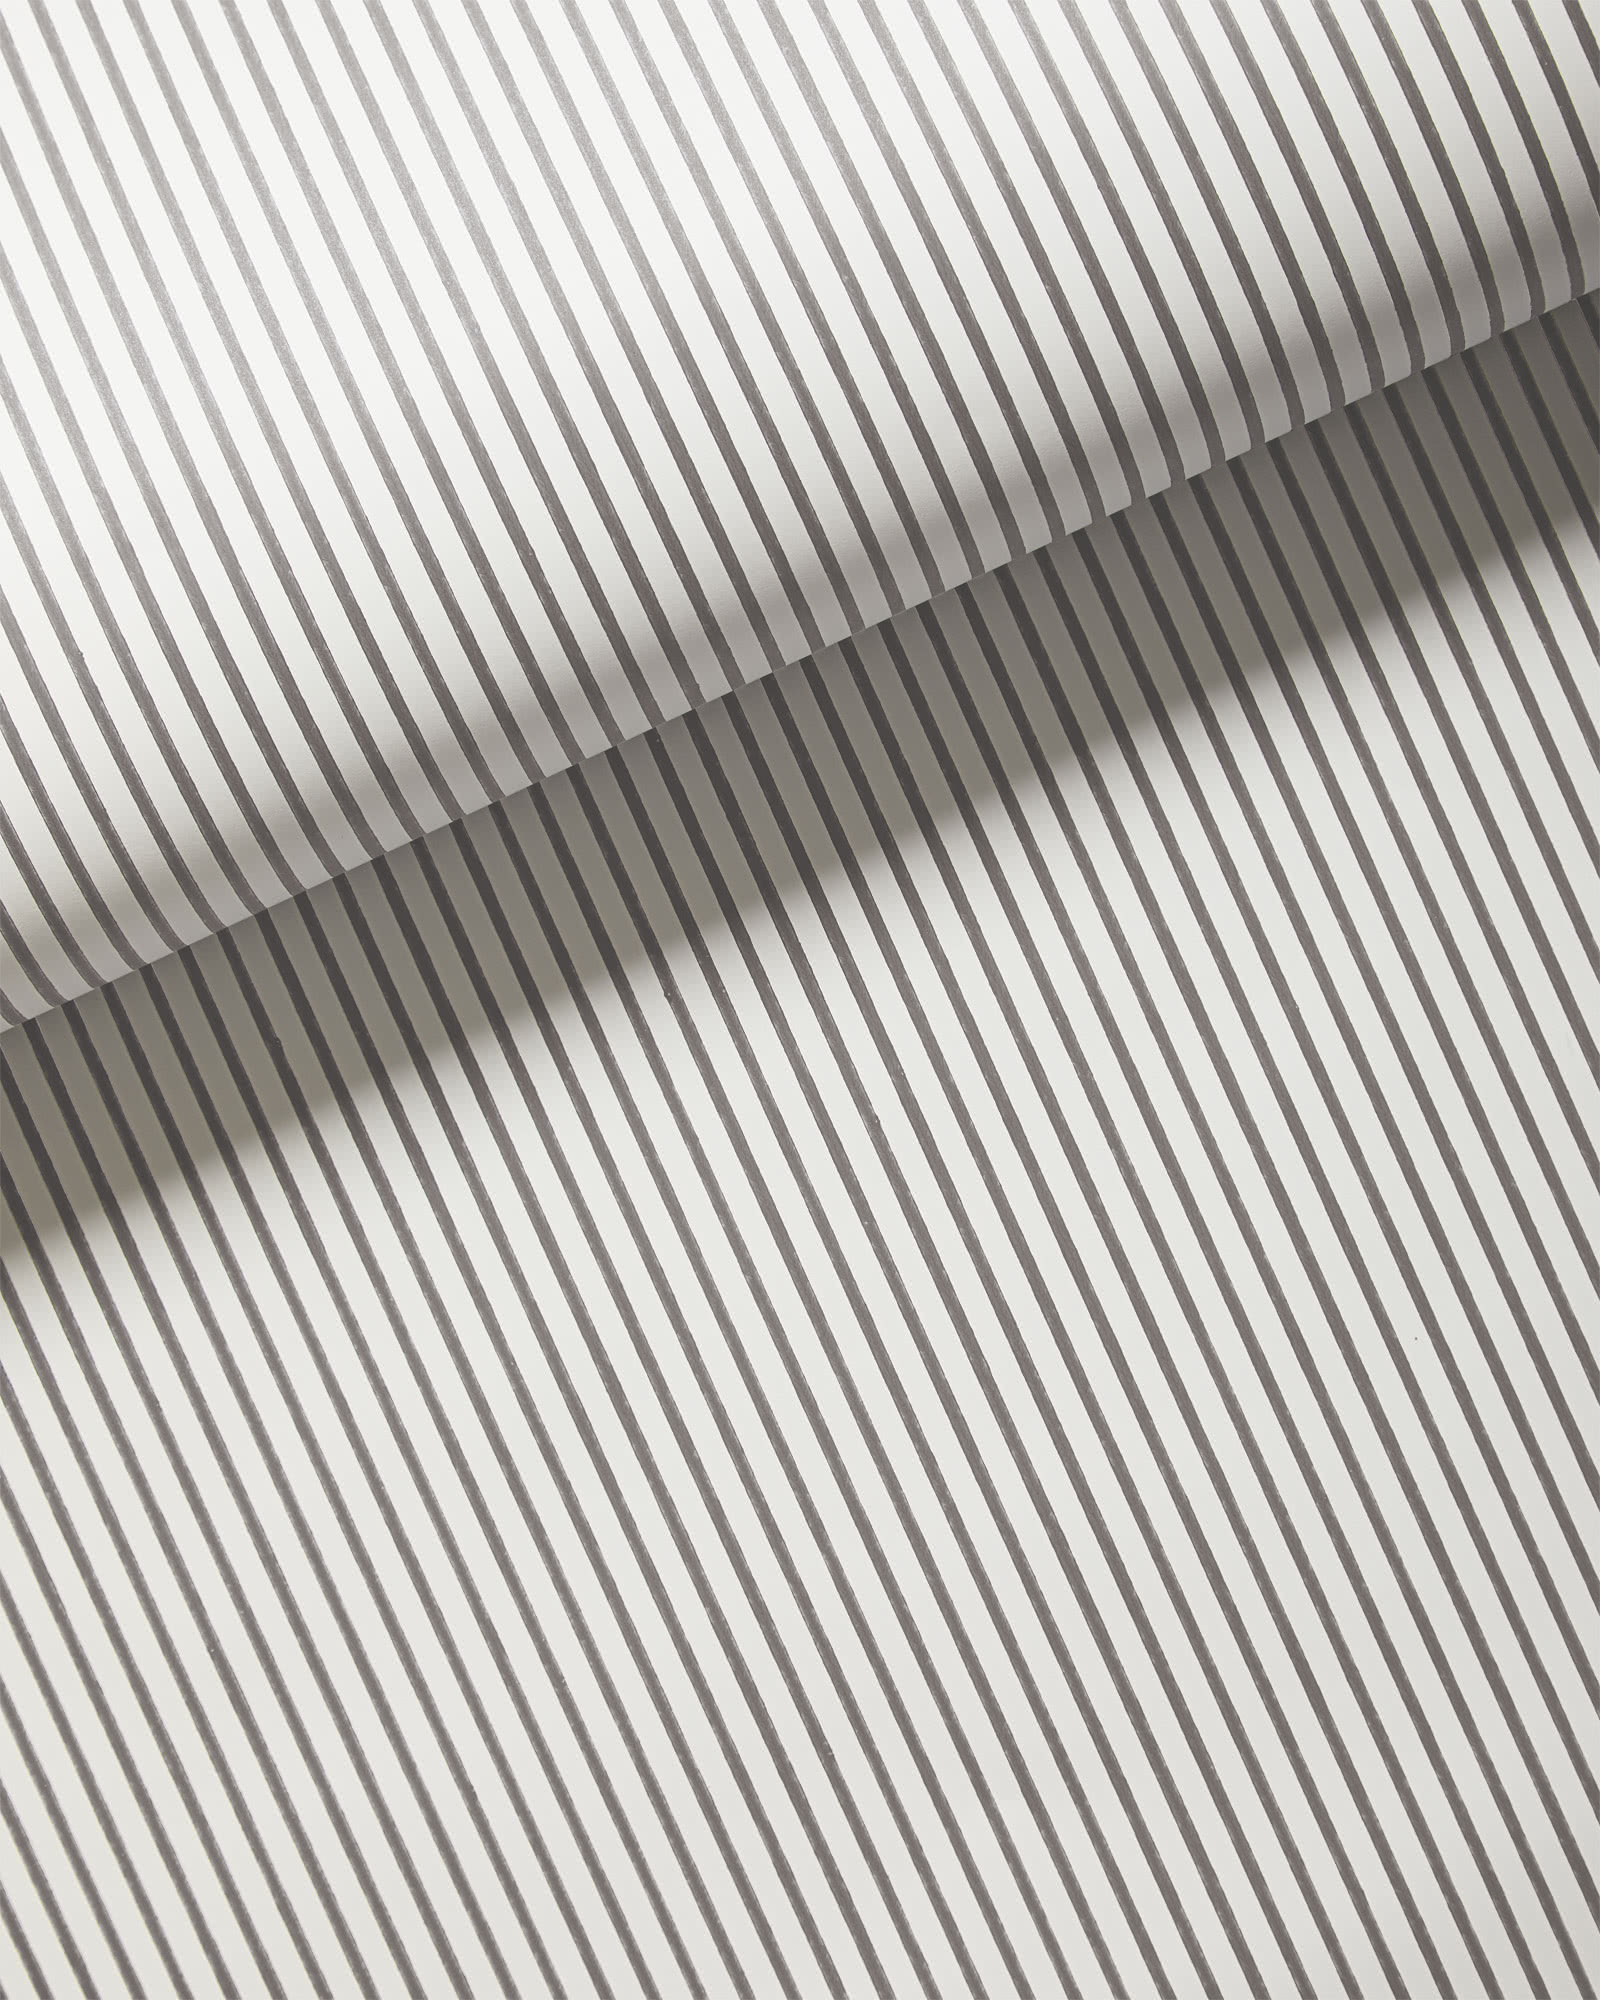 Oxford Stripe Wallpaper, Fog